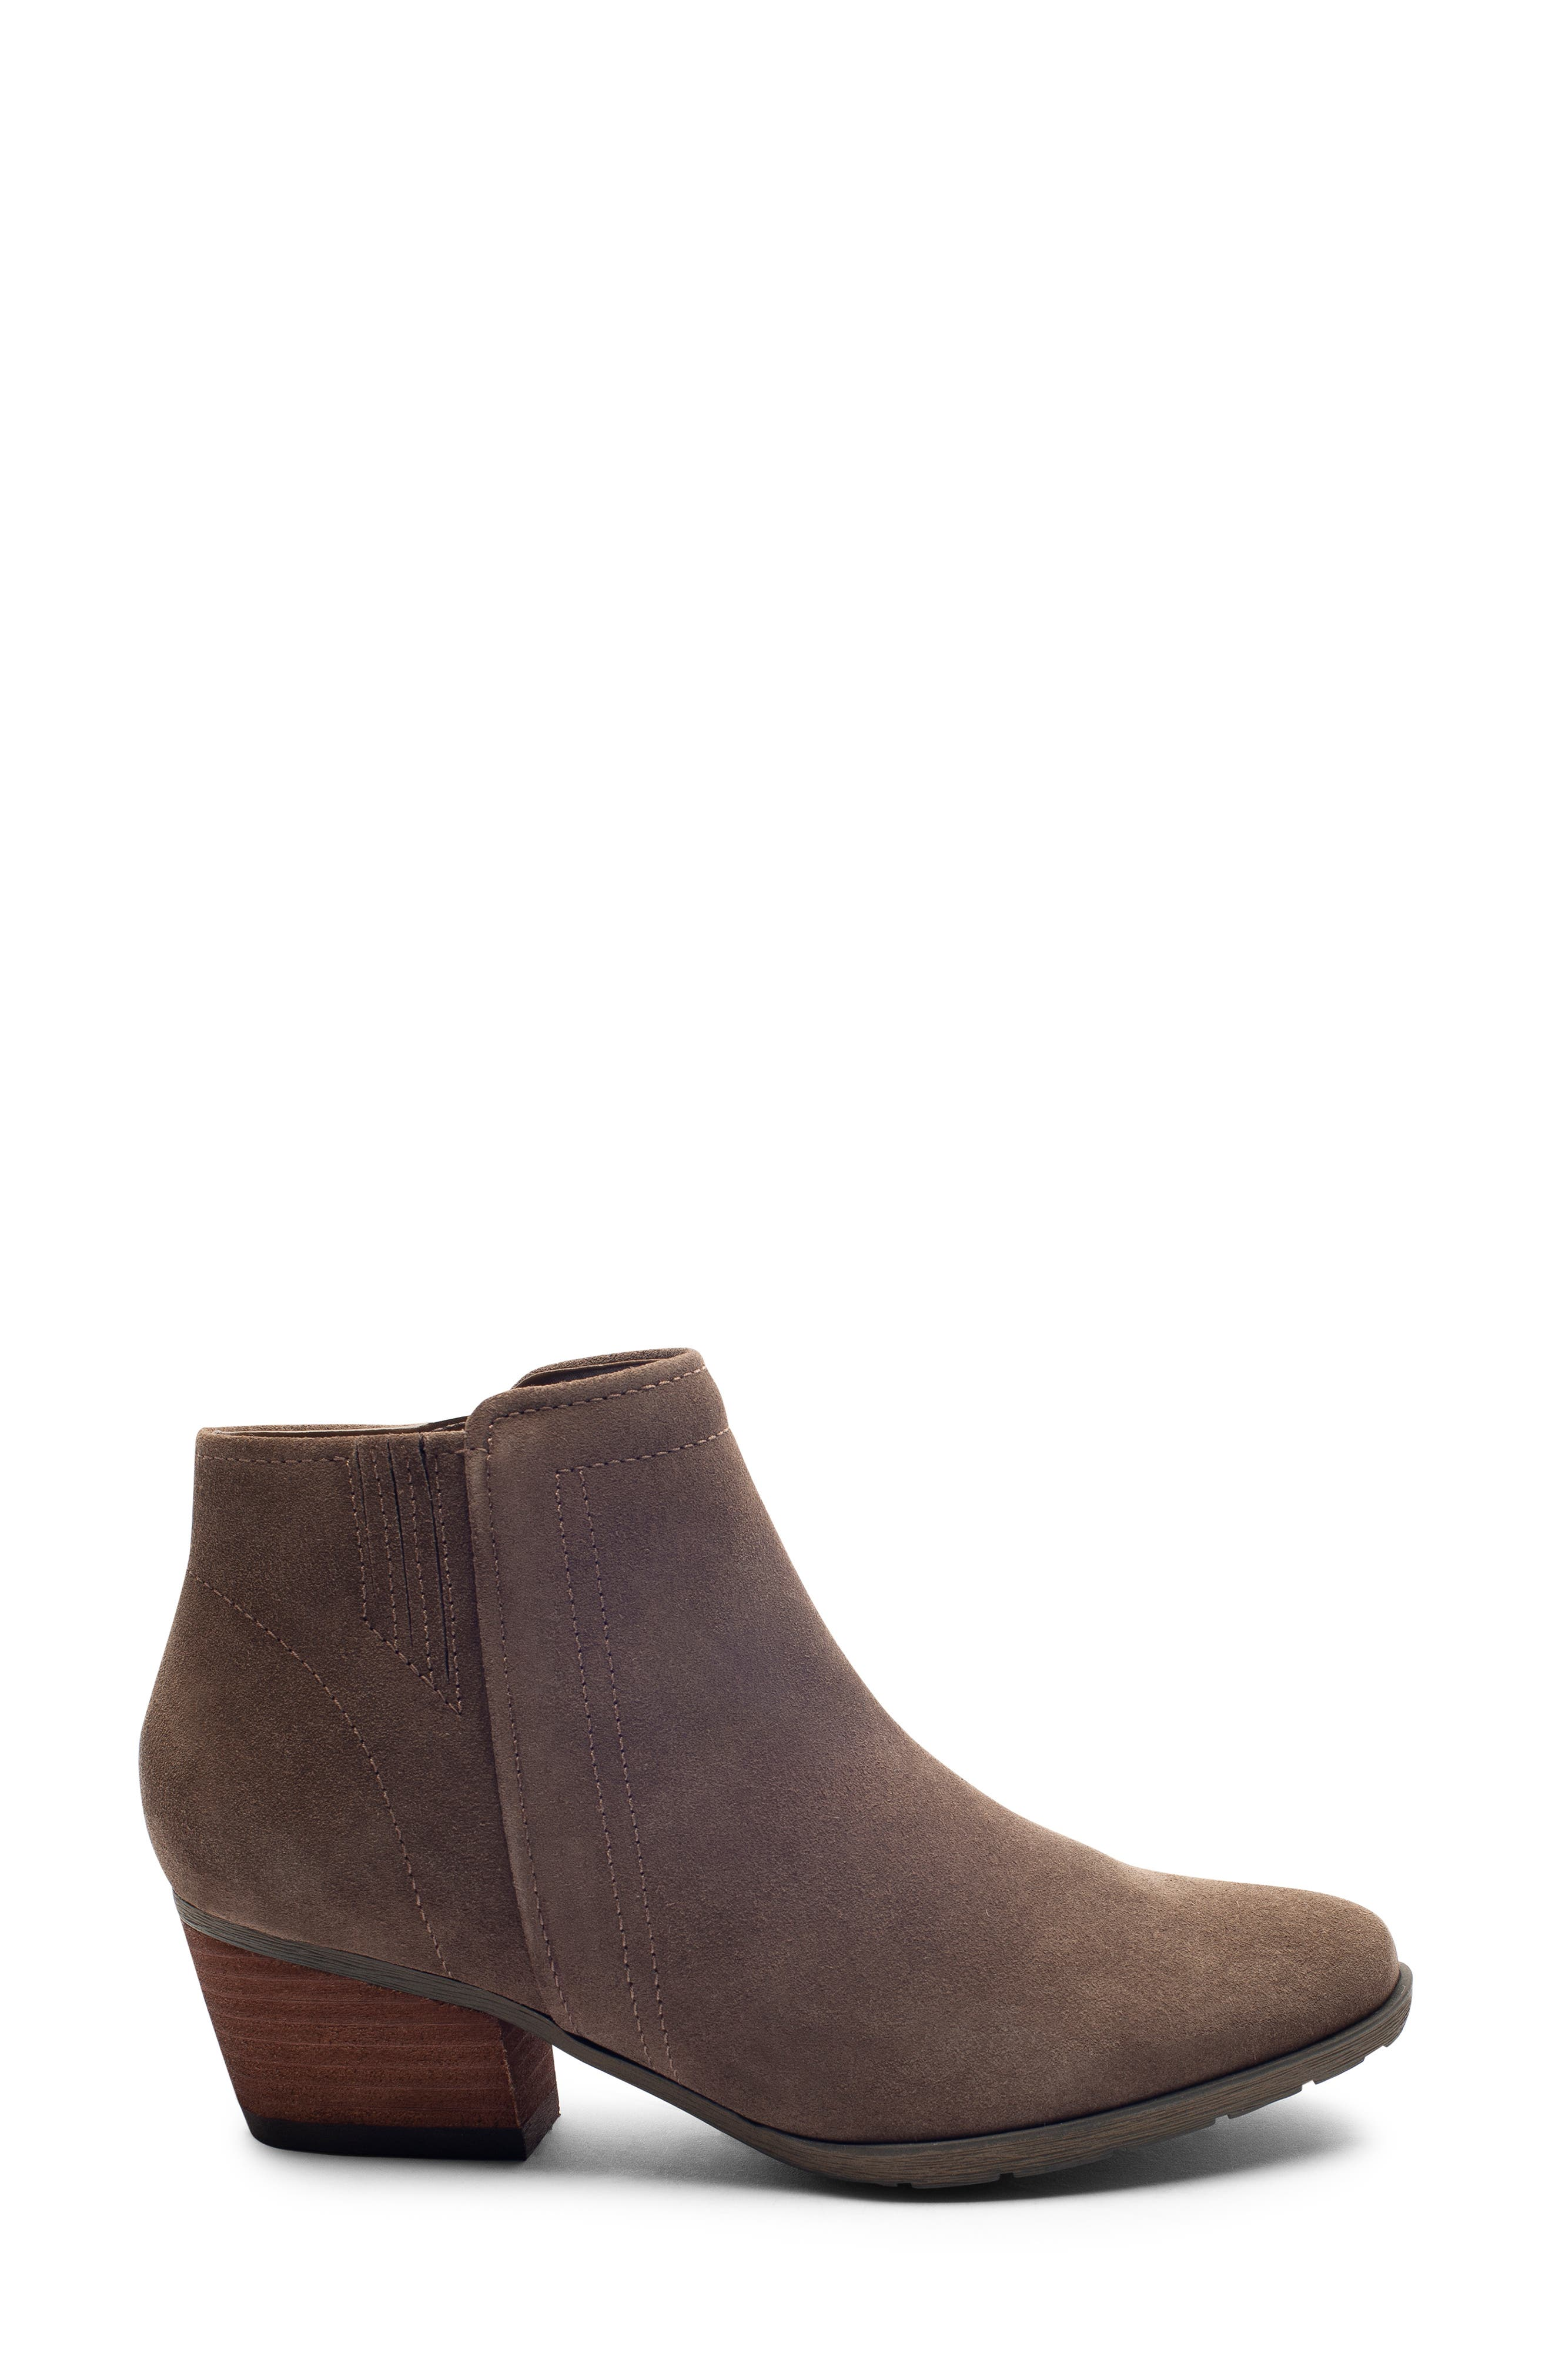 'Valli' Waterproof  Bootie,                             Alternate thumbnail 2, color,                             DARK TAUPE SUEDE